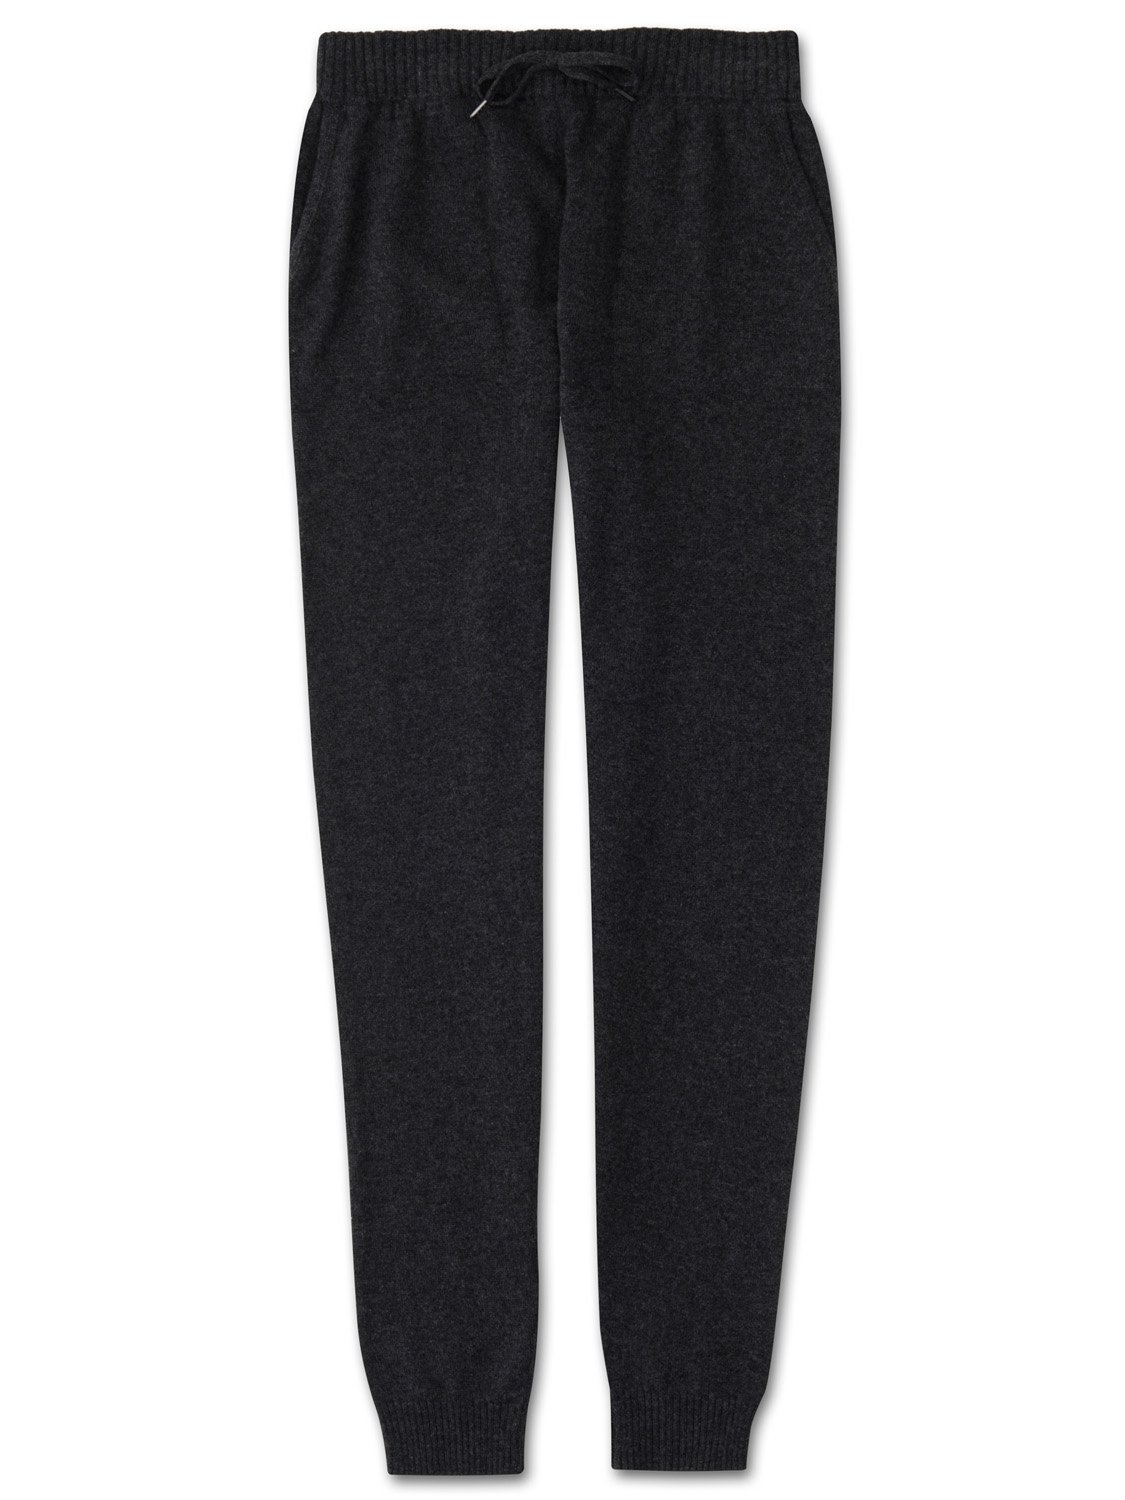 Women's Cashmere Track Pants Finley Pure Cashmere Charcoal